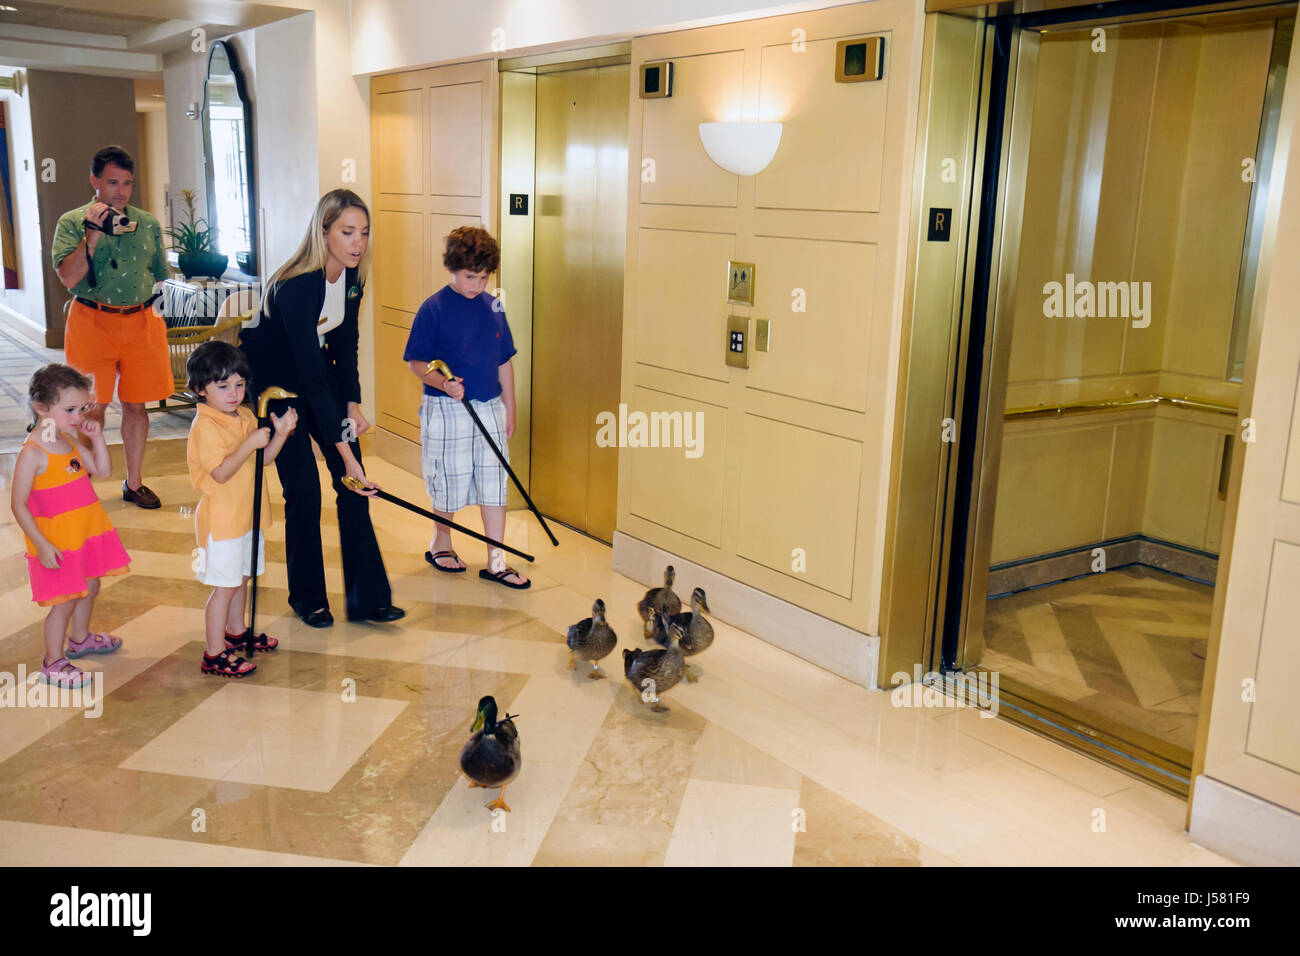 Orlando Florida International Drive The Peabody Orlando hotel Duck March woman man father parent girl boy boys children - Stock Image